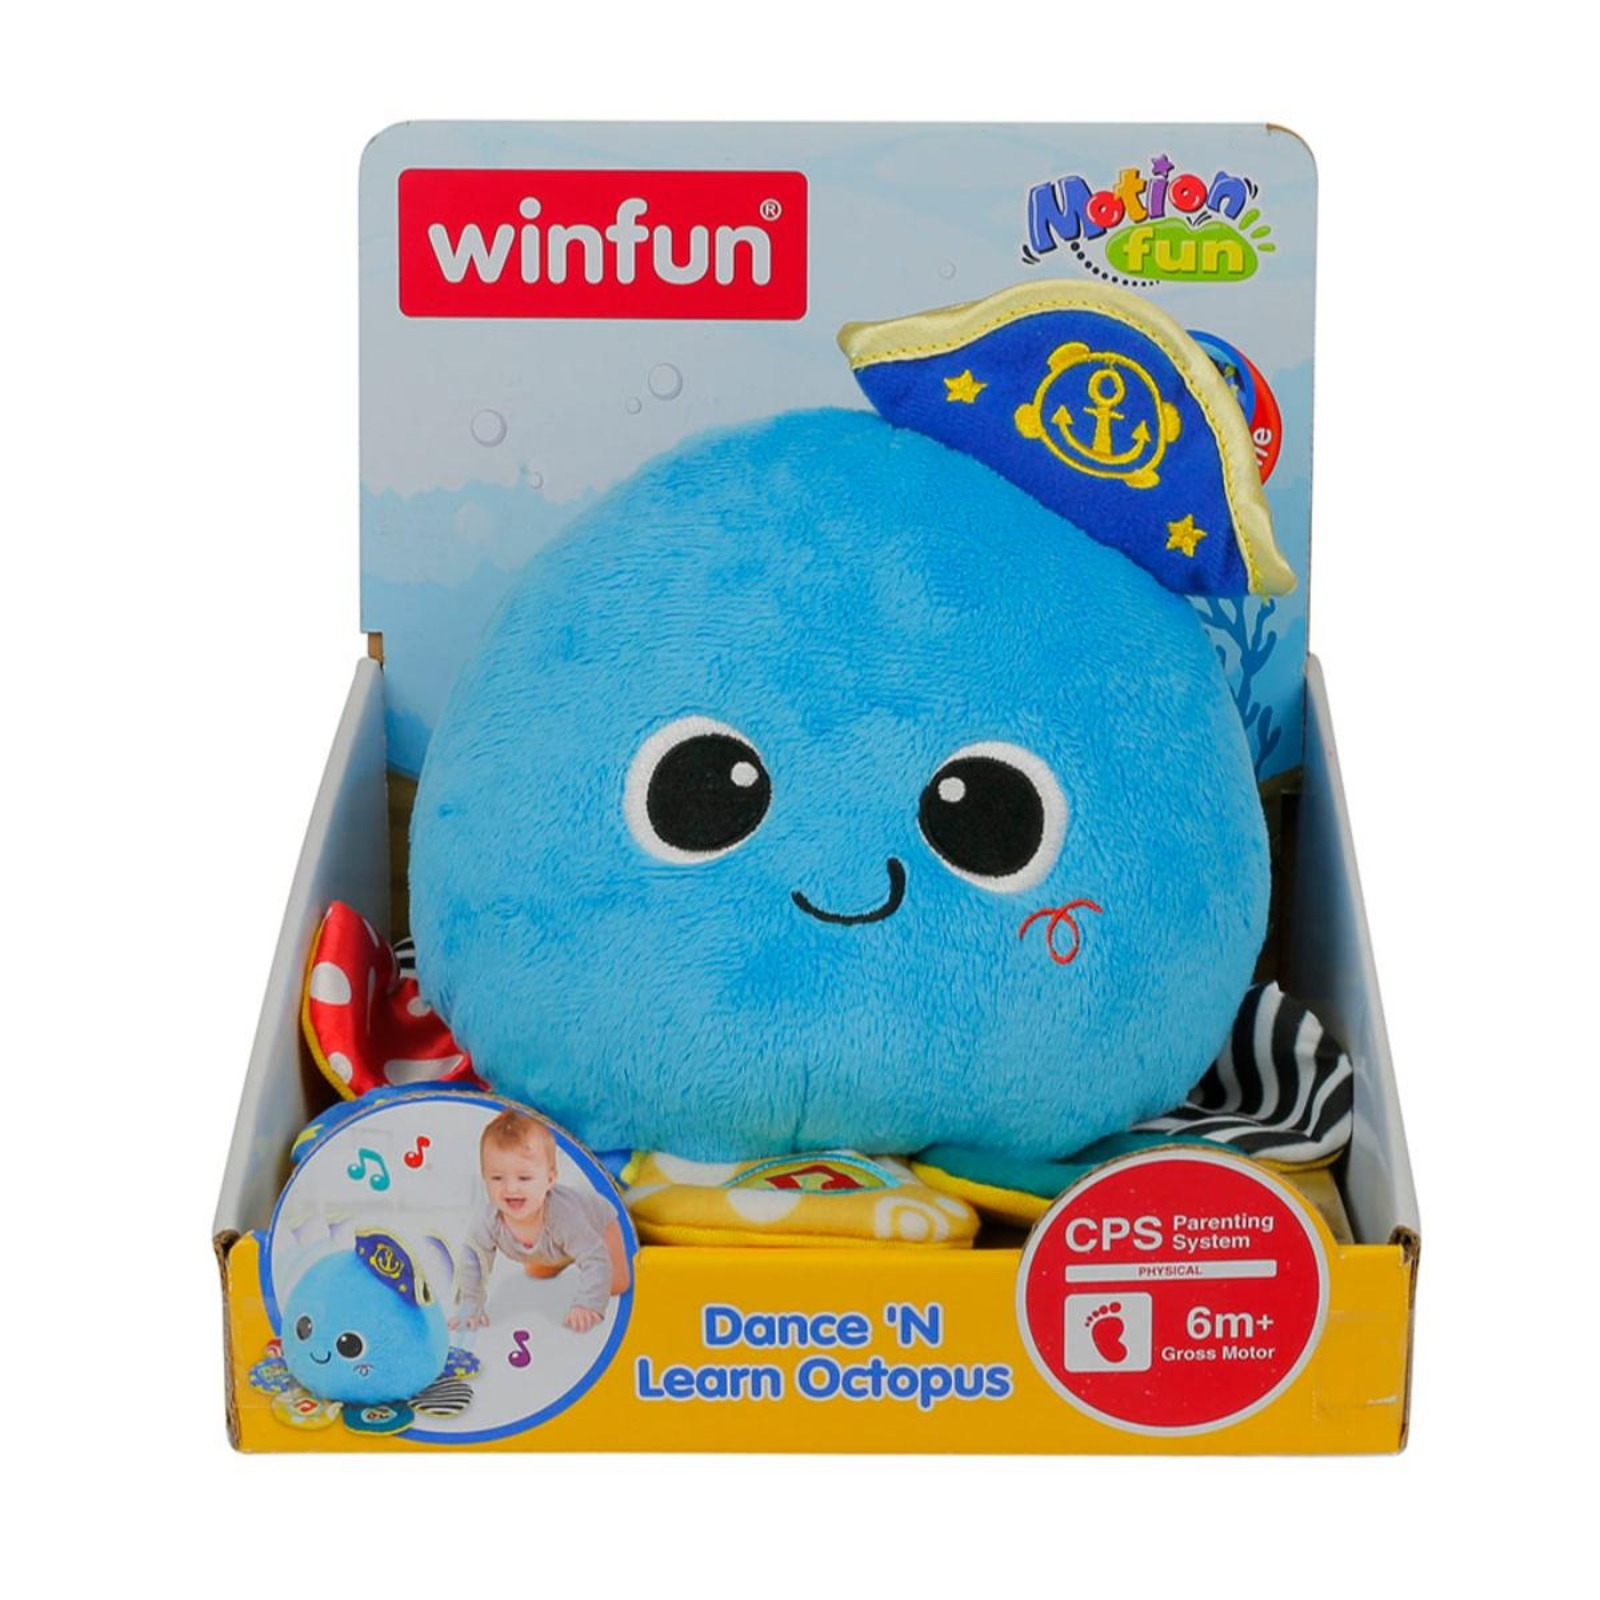 Winfun Dance 'N Learn Octopus